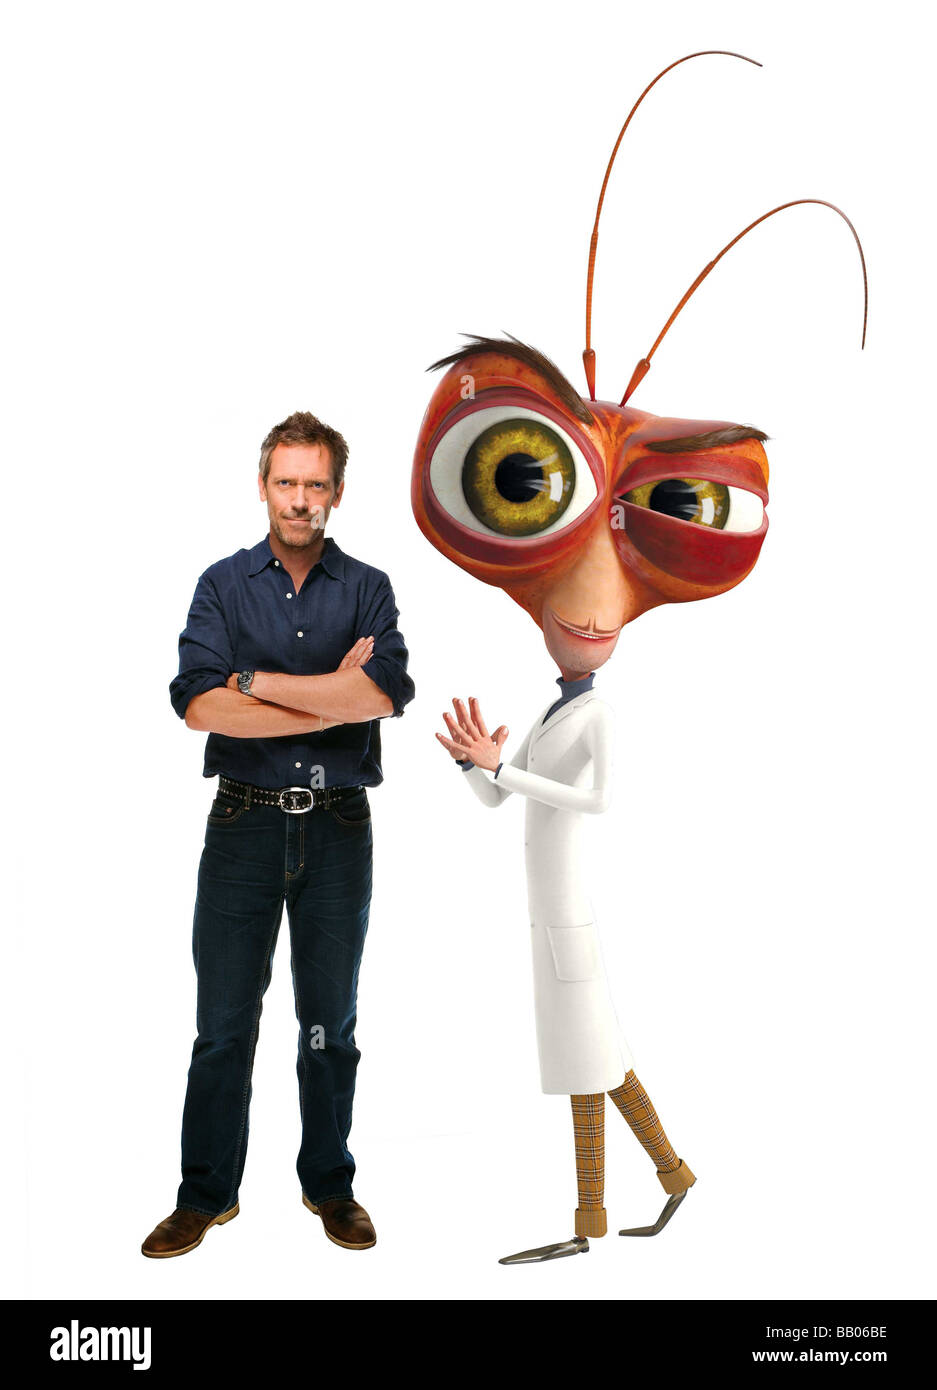 Monsters vs. Aliens Year : 2009 Directors : Rob Letterman, Conrad Vernon Hugh Laurie voice of Dr. Cockroach Ph.D. - Stock Image